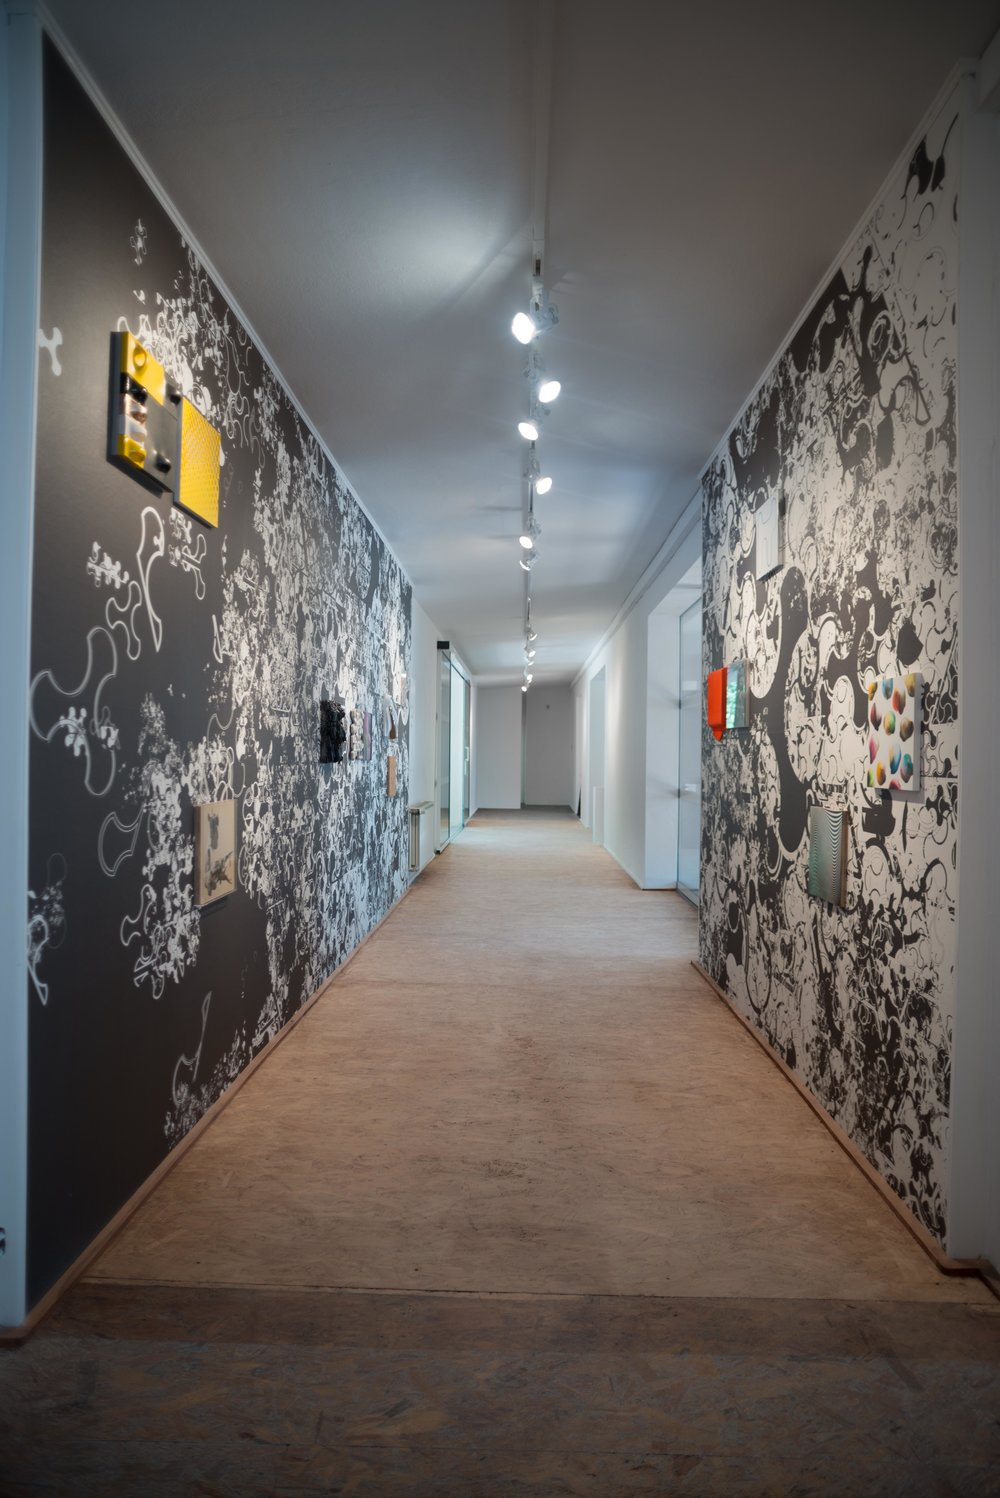 installation view, Bei Wu, Wesenberg, Germany, 2016